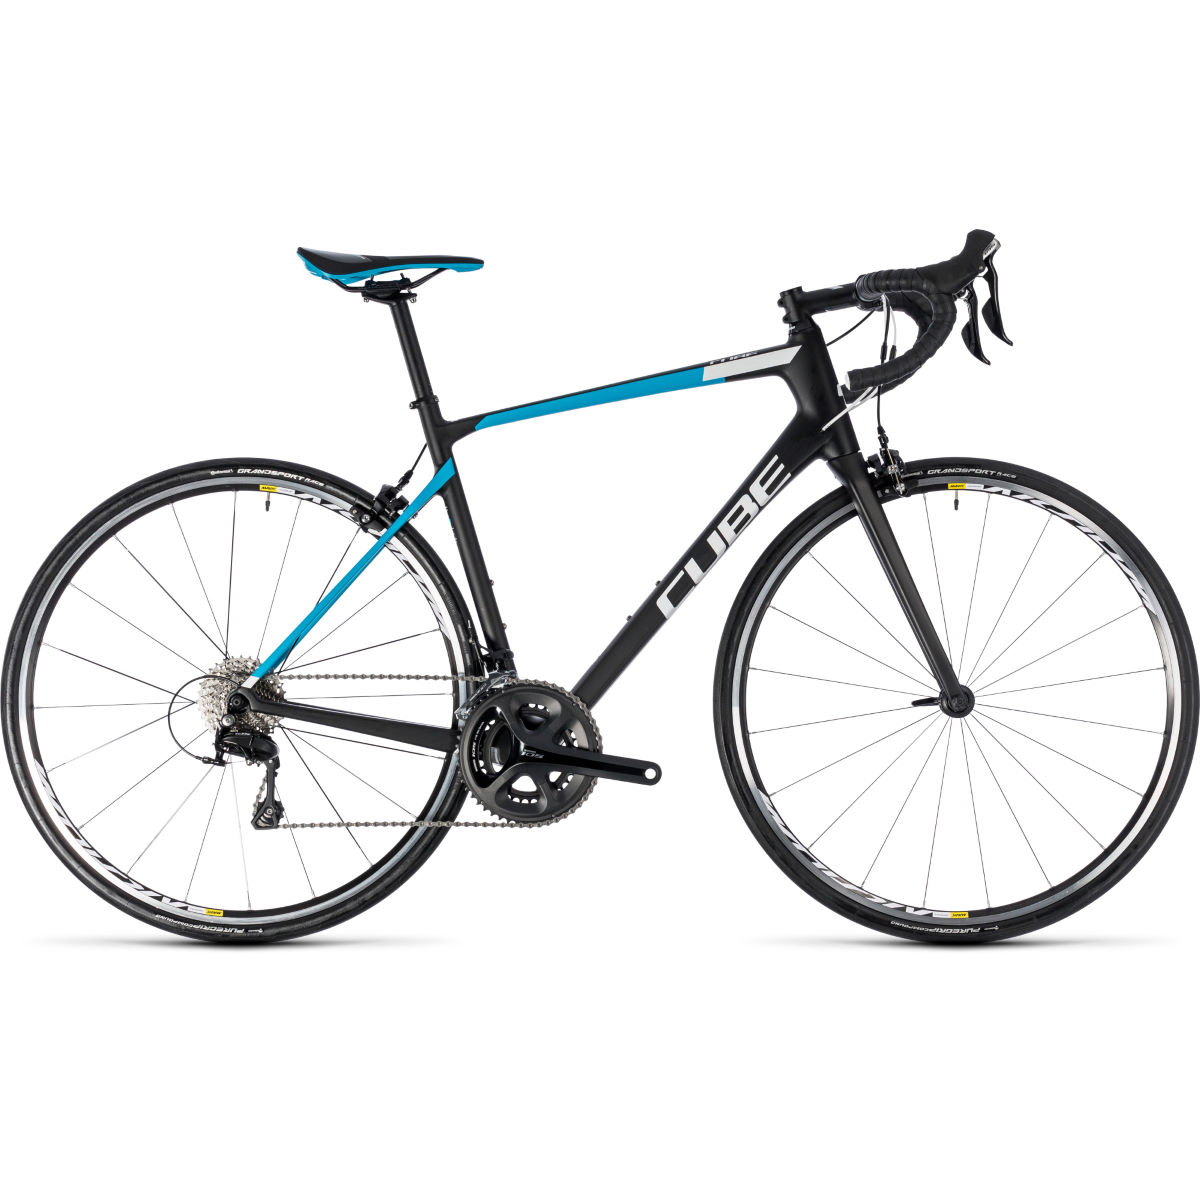 Vélo de route Cube Attain GTC Pro - 62cm Stock Bike Noir/Bleu